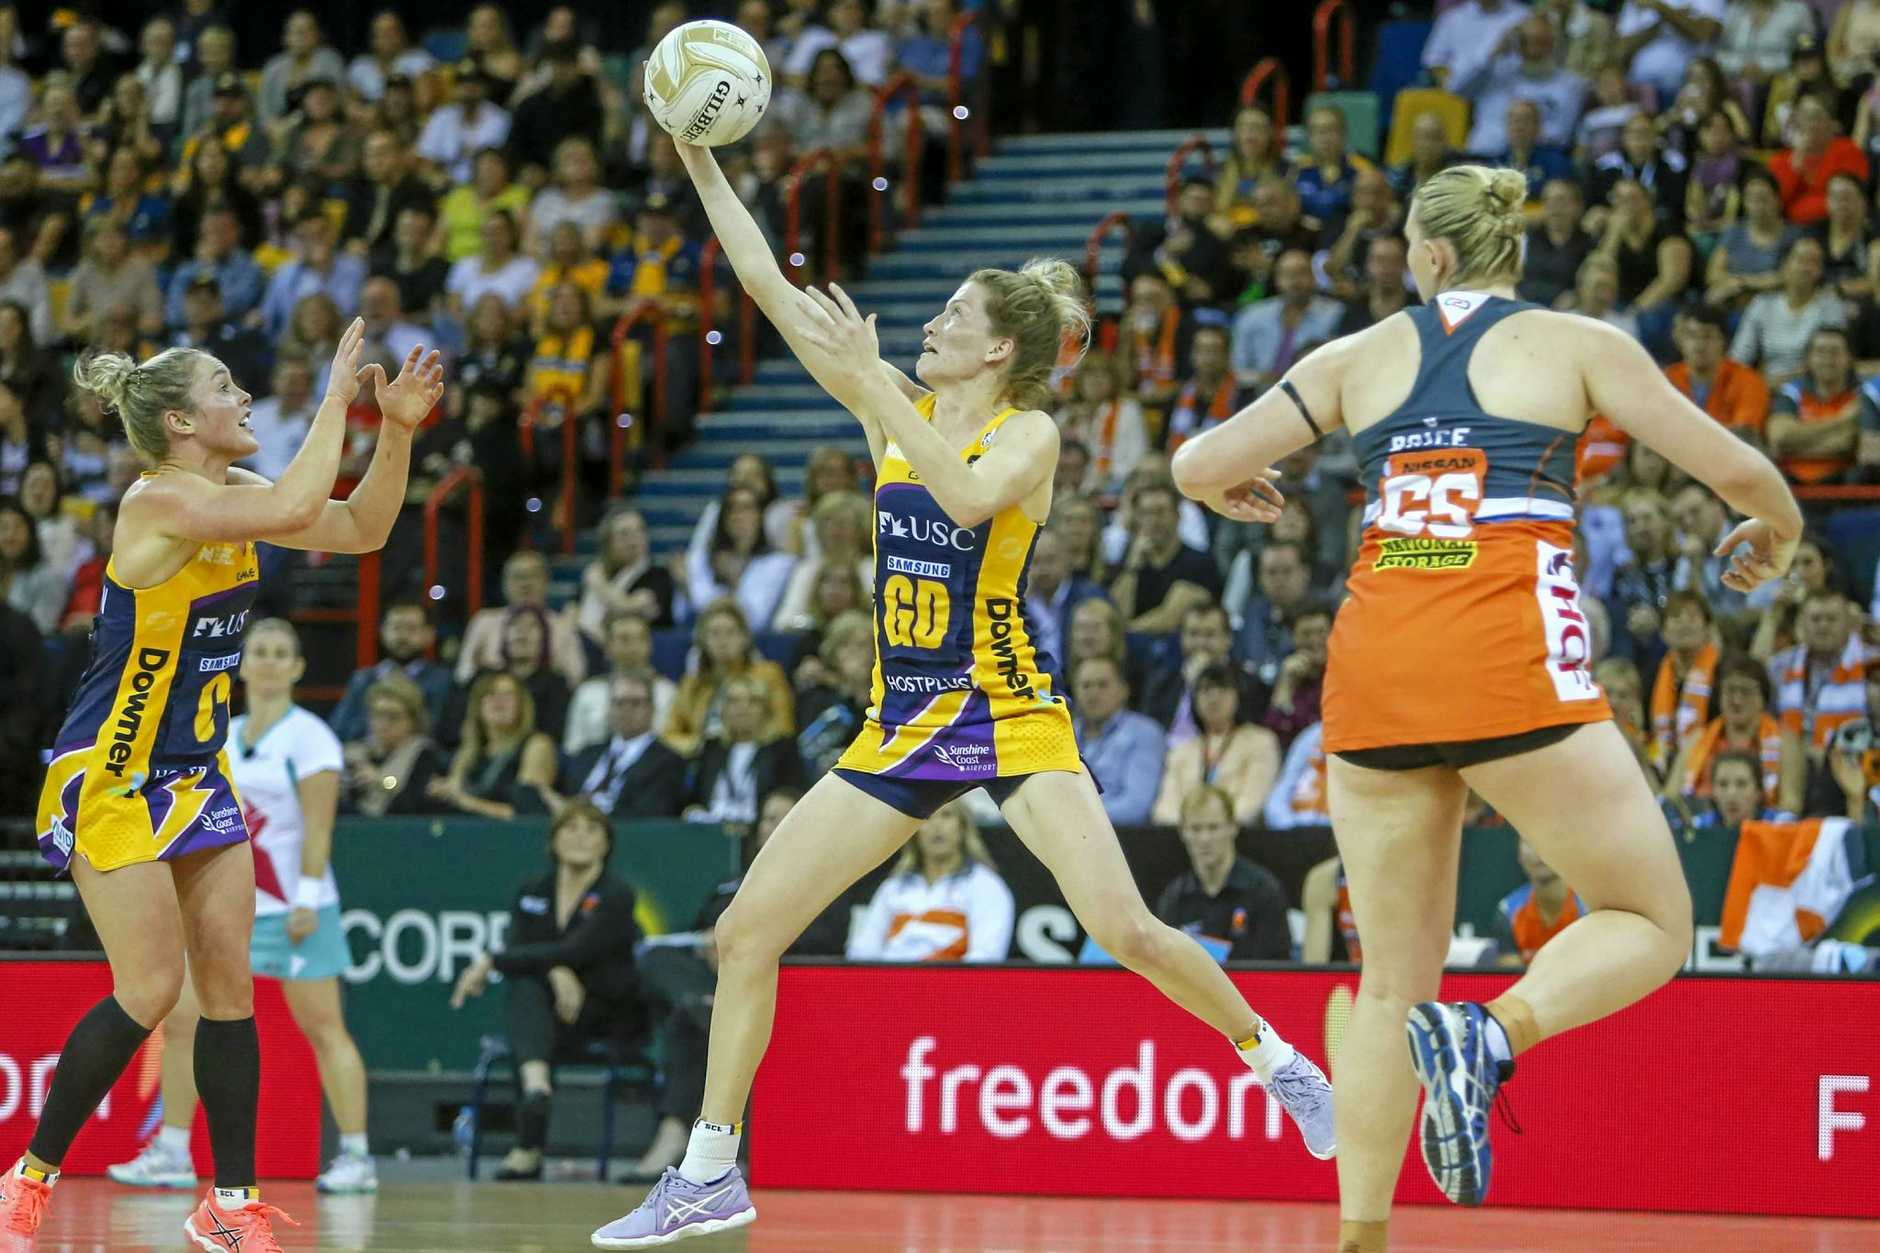 MOST VALUABLE PLAYER: Karla Mostert of the Lightning in action during the Suncorp Super Netball Grand Final between the Sunshine Coast Lightning and the Giants Netball.